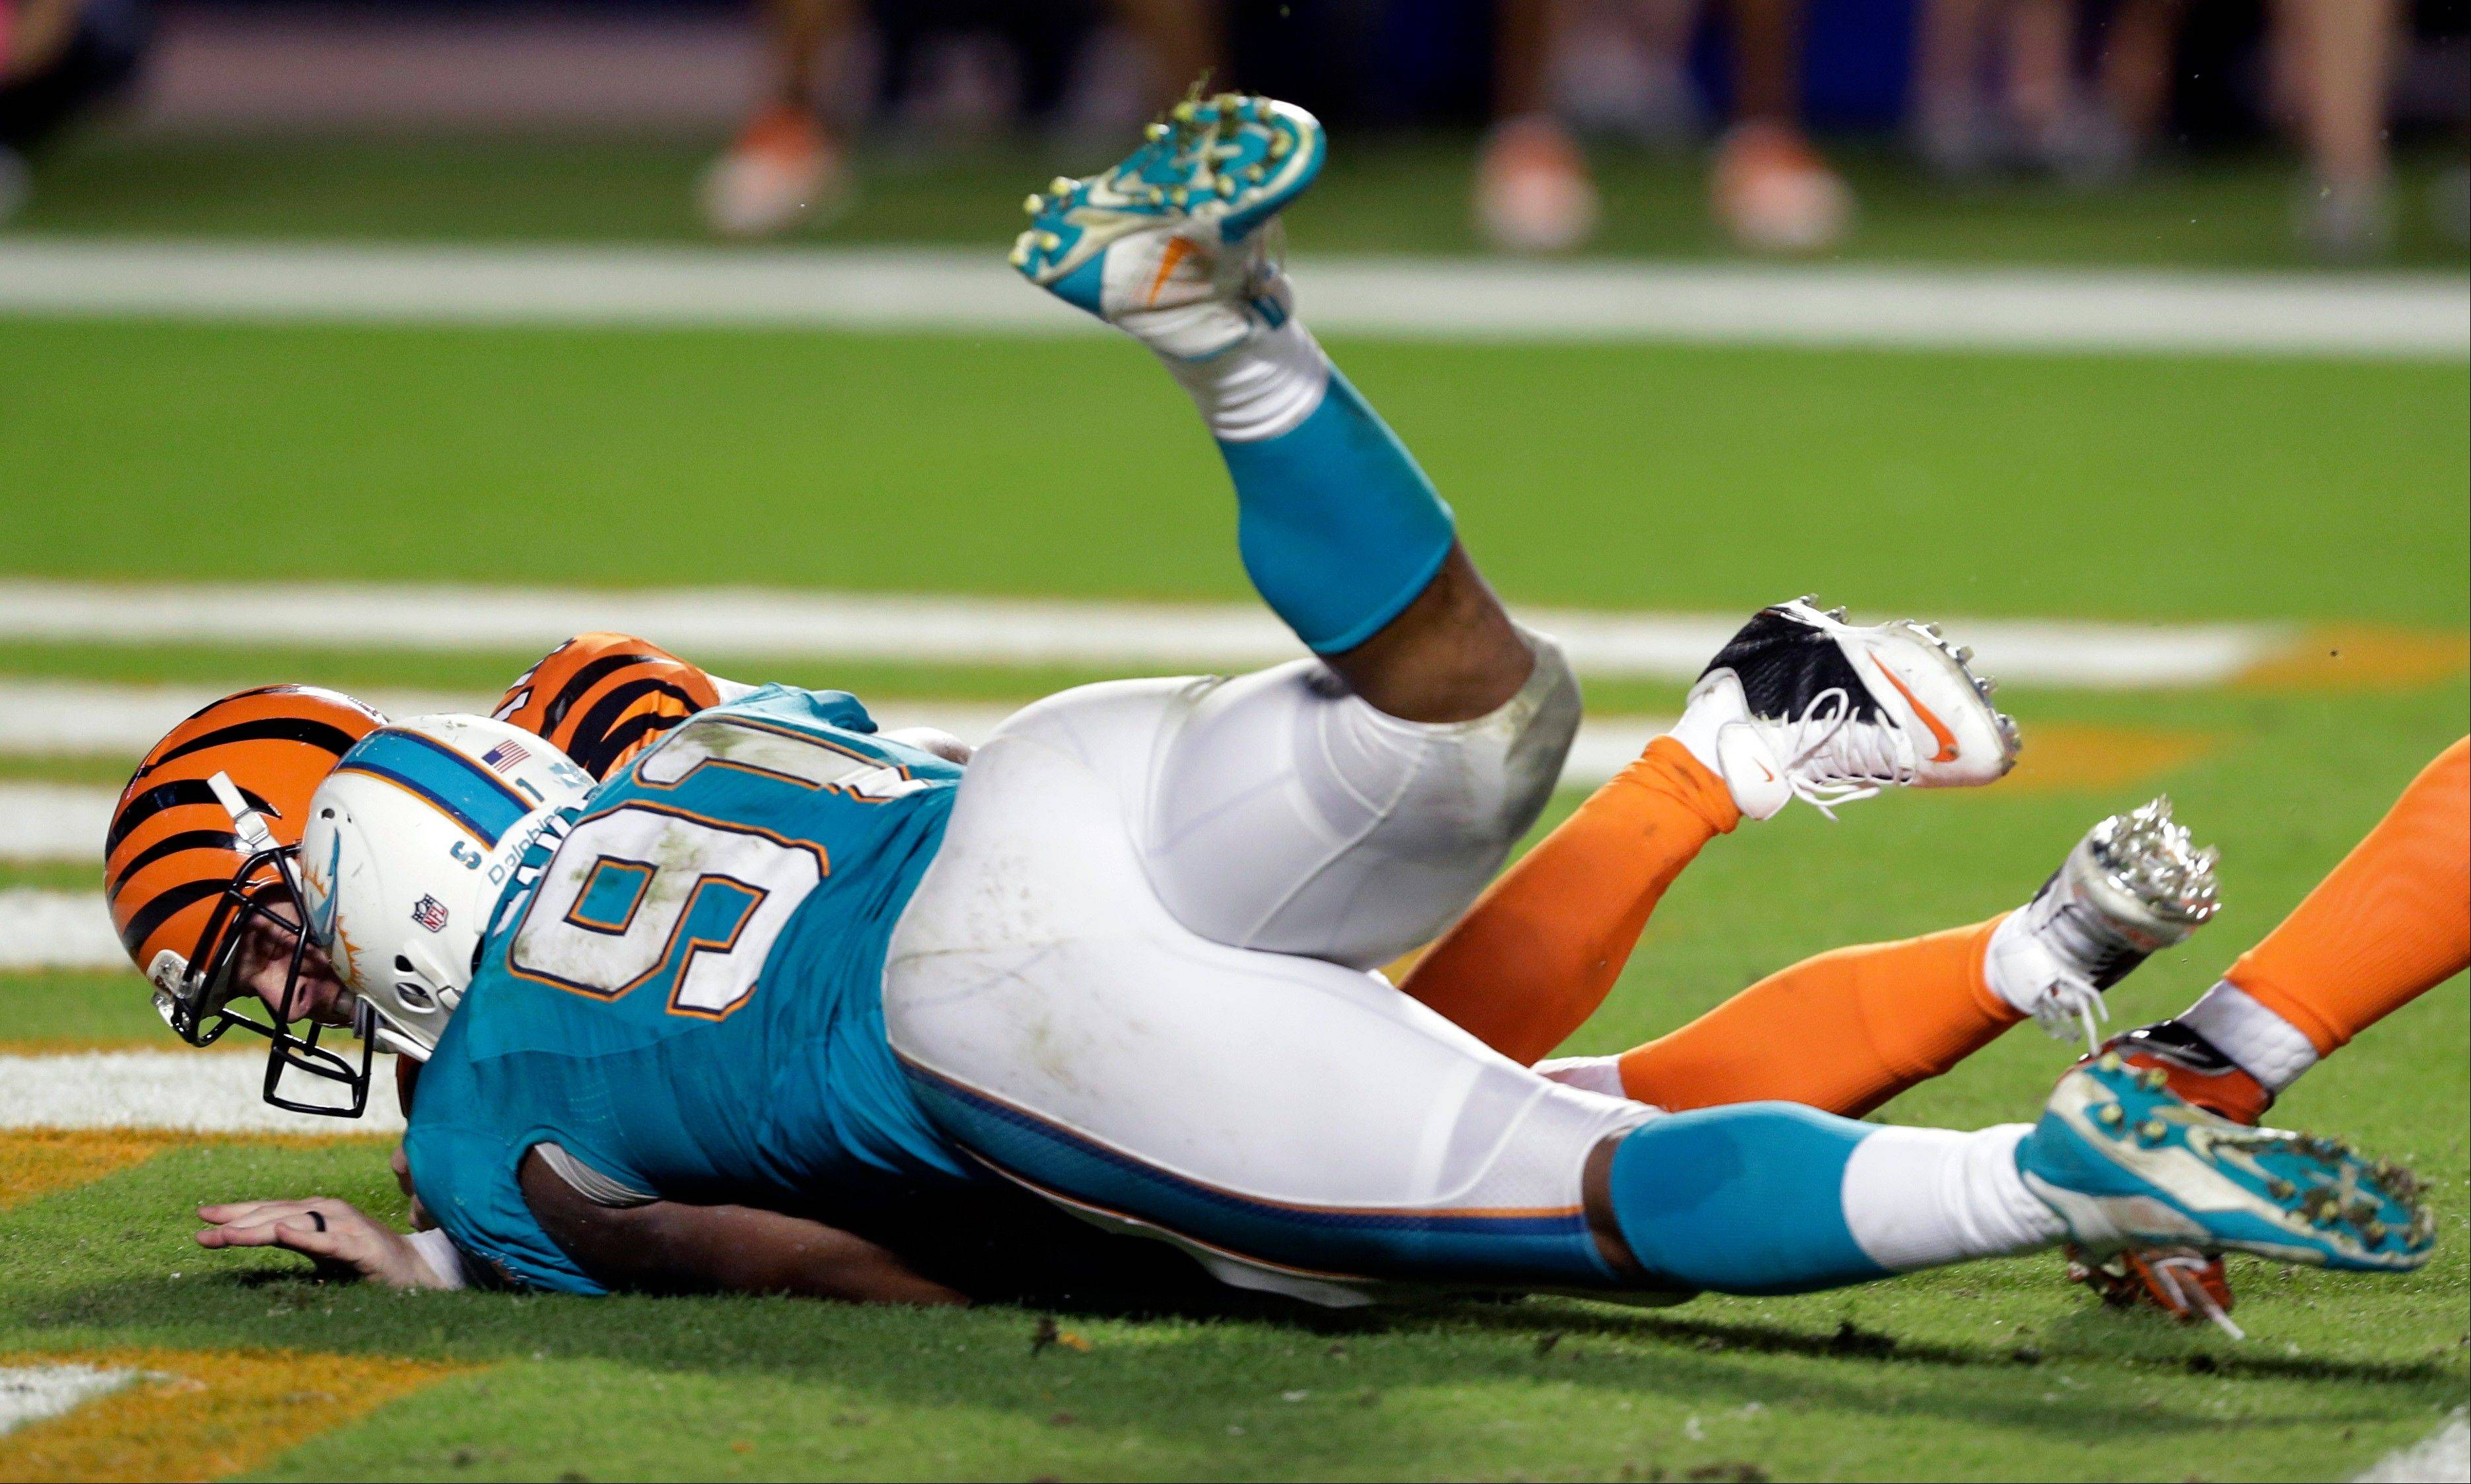 Miami Dolphins defensive end Cameron Wake sacks Cincinnati Bengals quarterback Andy Dalton in the end zone for a safety during overtime Thursday night.